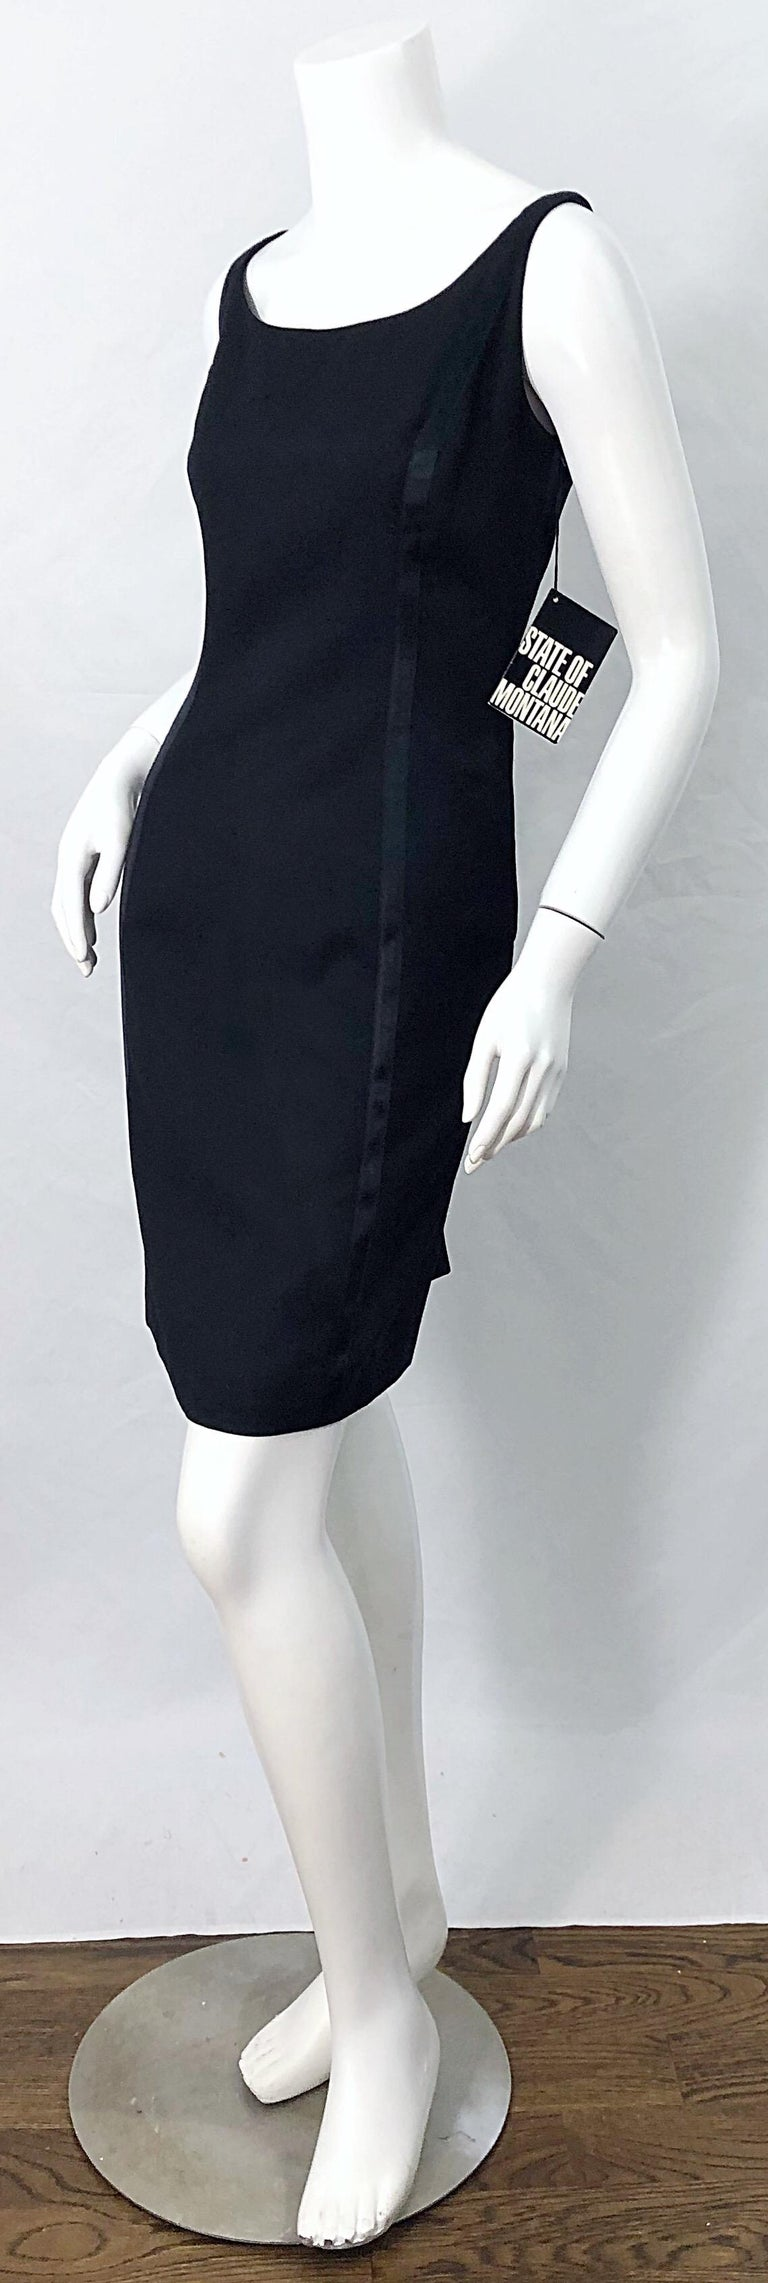 NWT 1990s Claude Montana Size 6 Vintage 90s Sleeveless Little Black Dress  For Sale 2